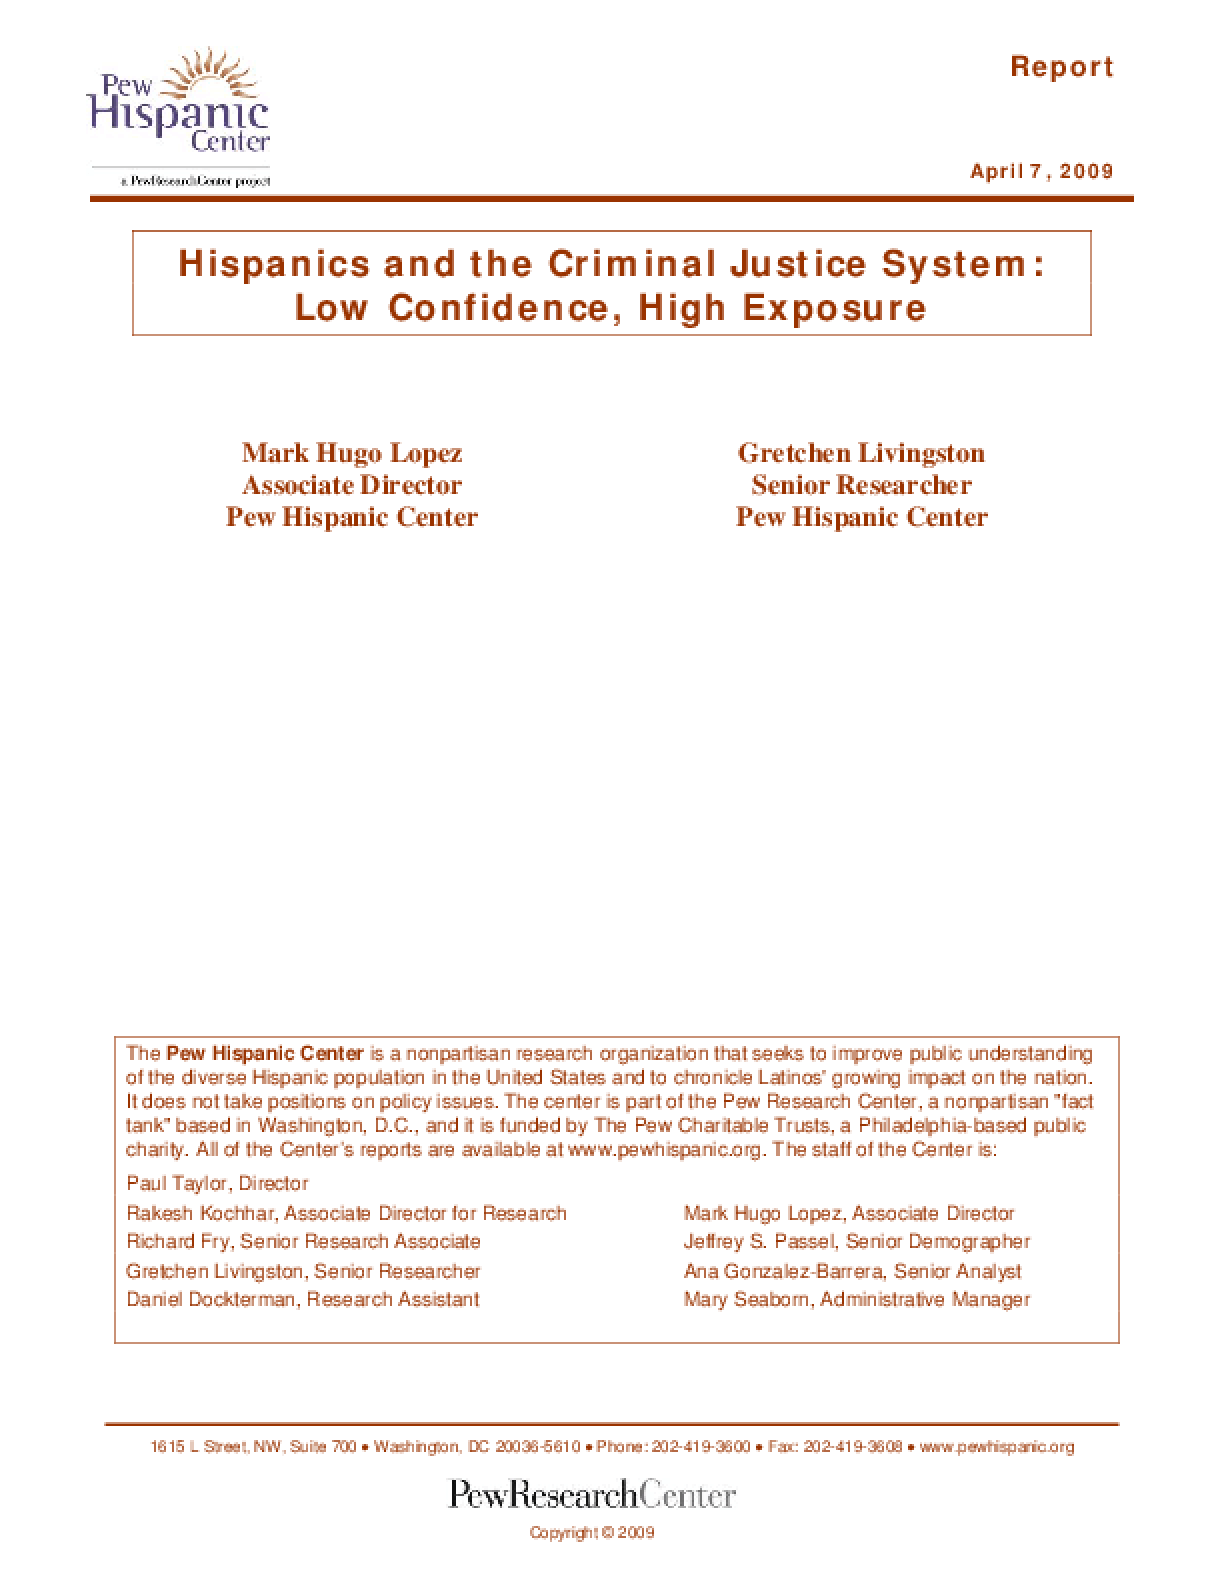 Hispanics and the Criminal Justice System: Low Confidence, High Exposure